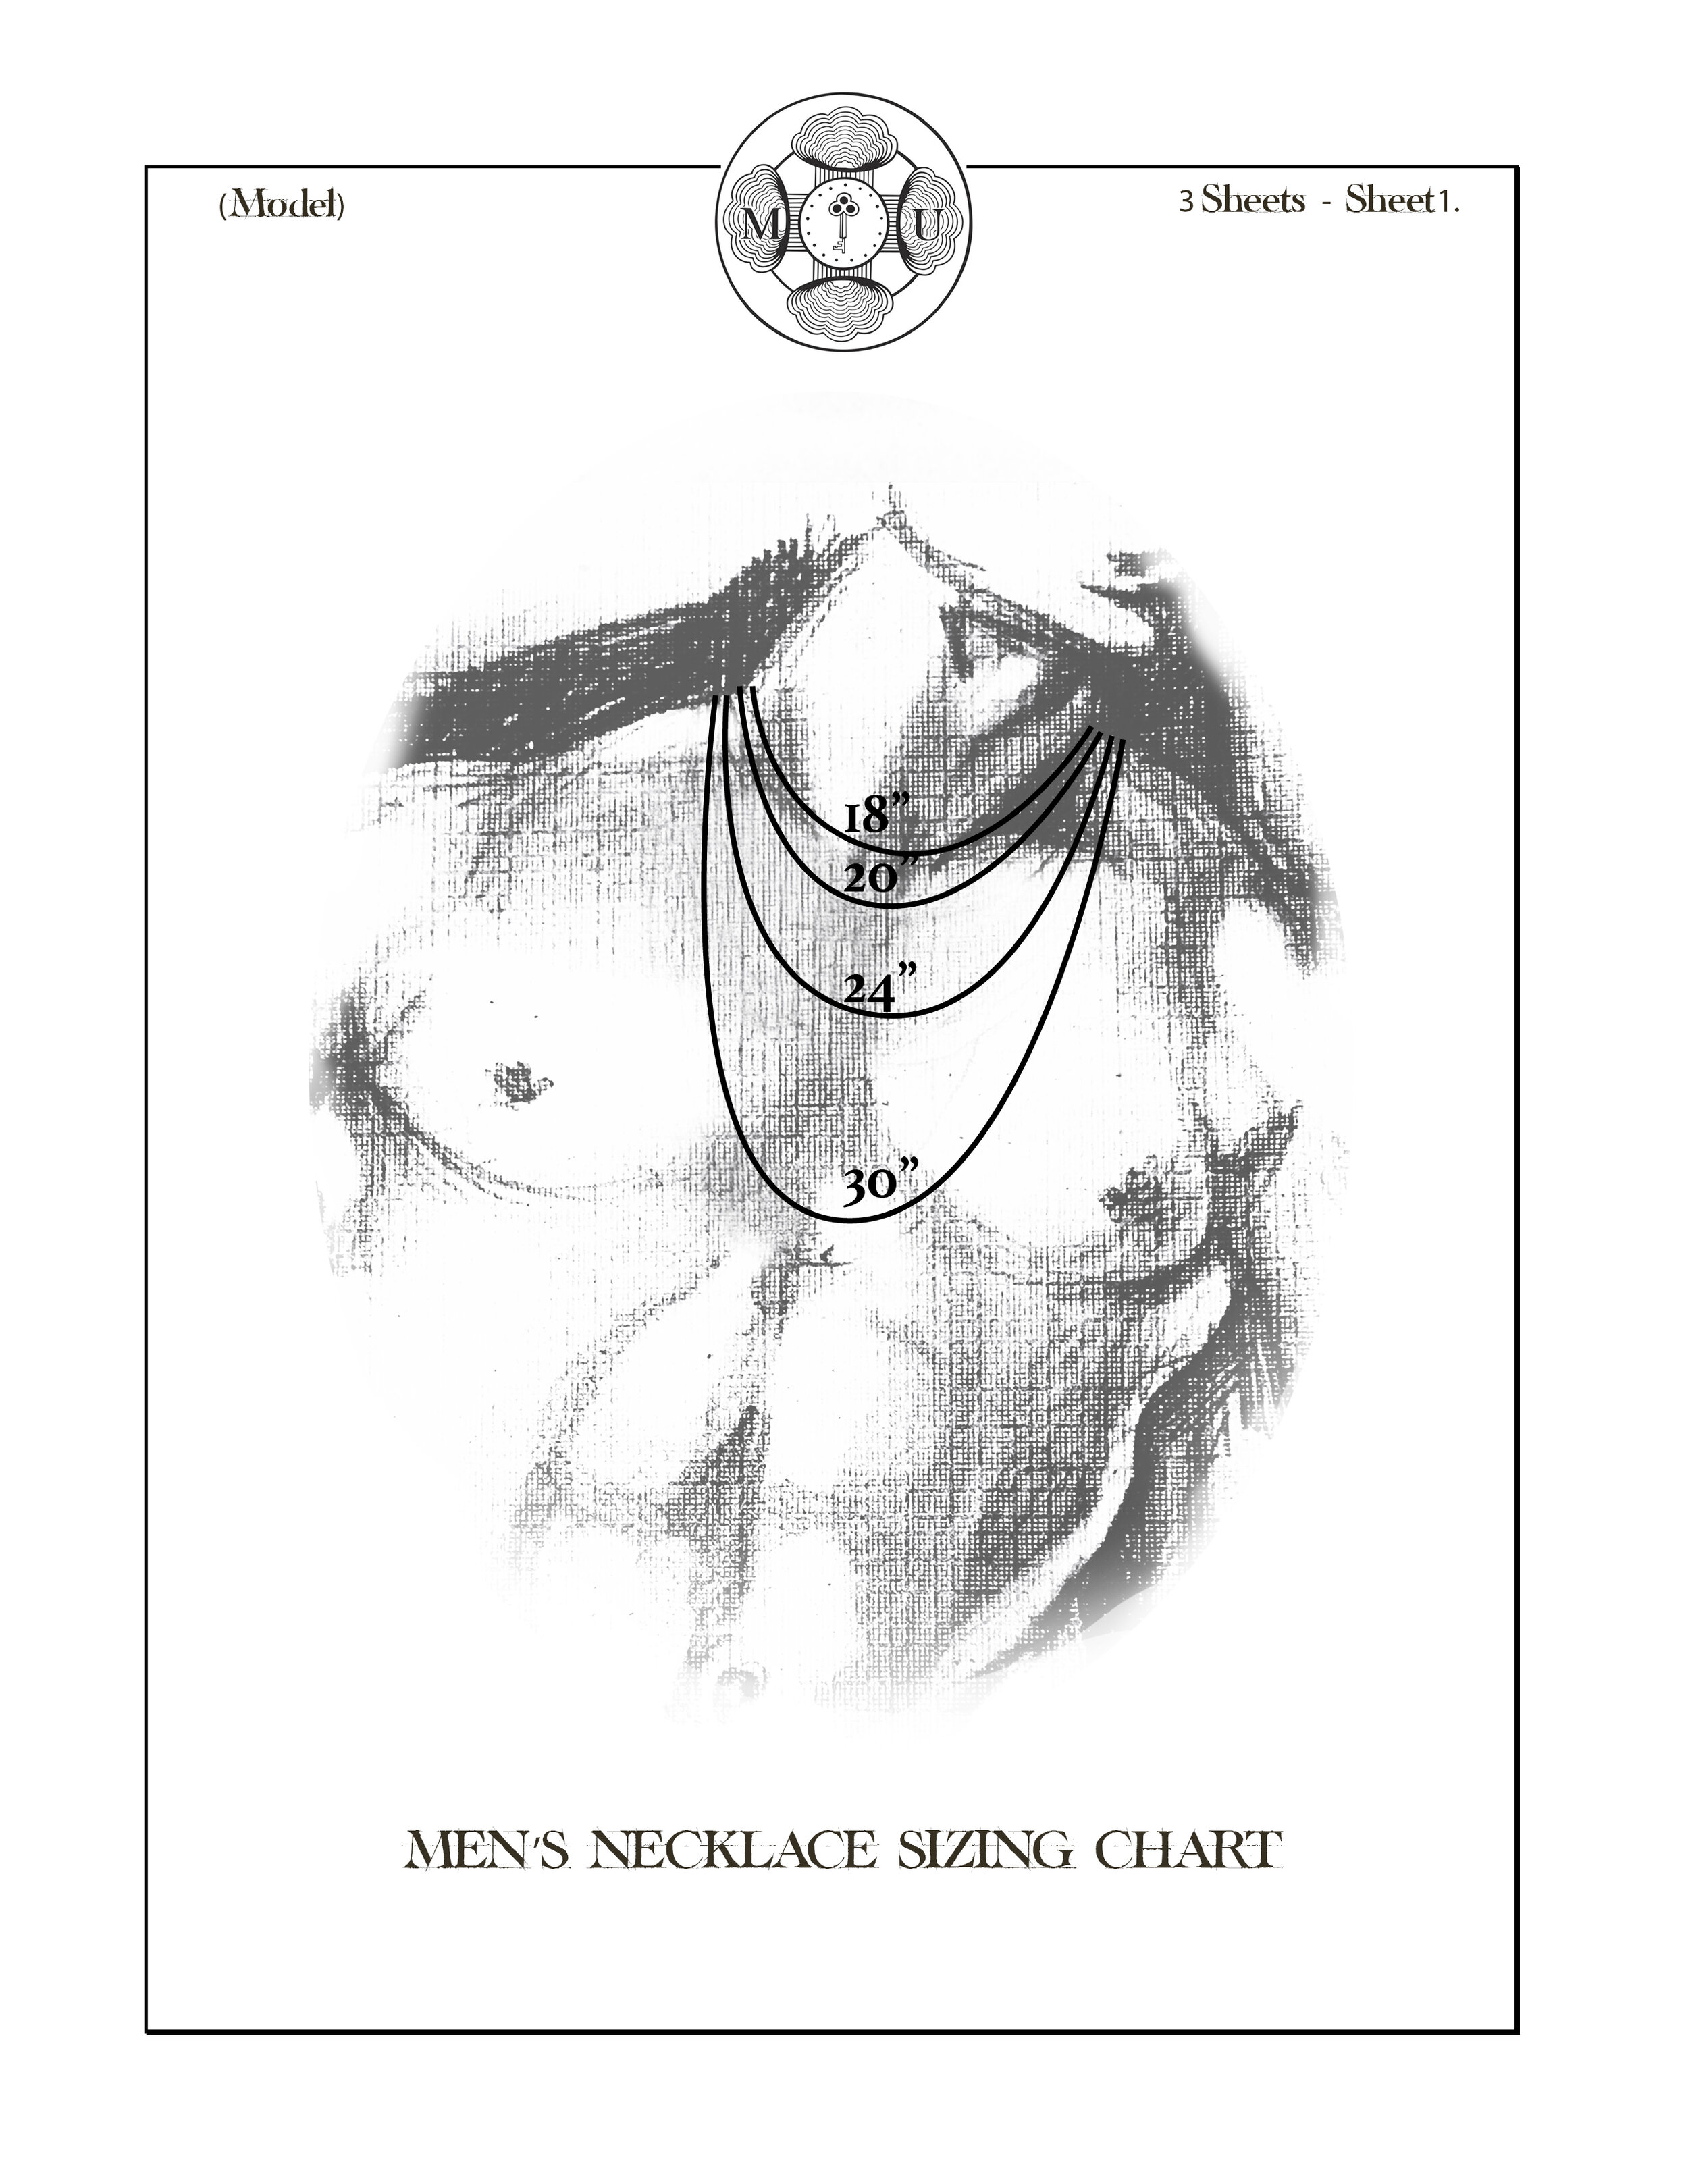 Mic Urban_Men Necklace Chart_small frame.jpg